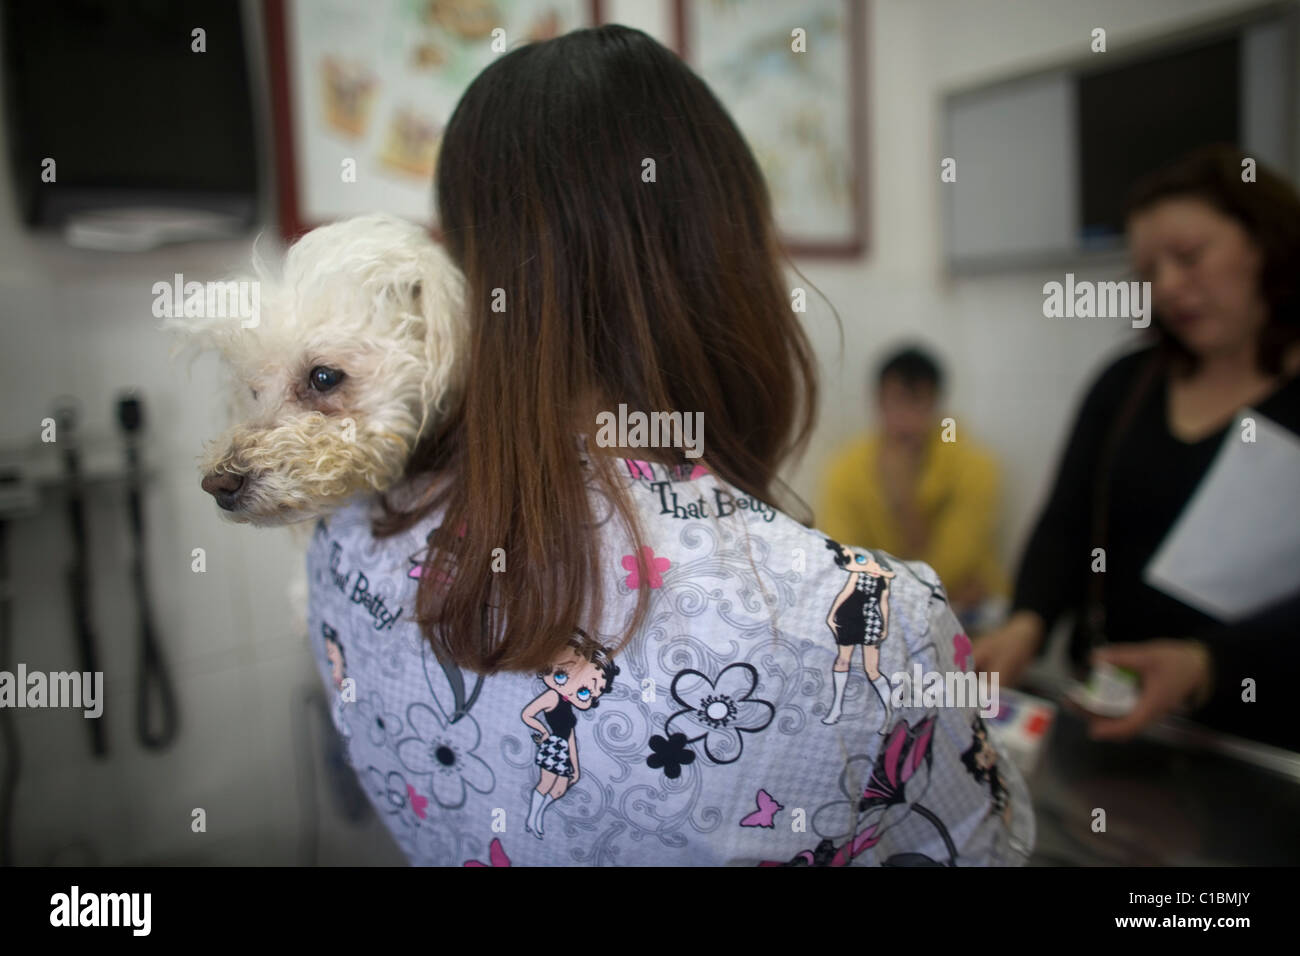 A veterinarian holds a Poodle dog as she speaks with its owners at a Pet Hospital in Condesa, Mexico City, Mexico - Stock Image